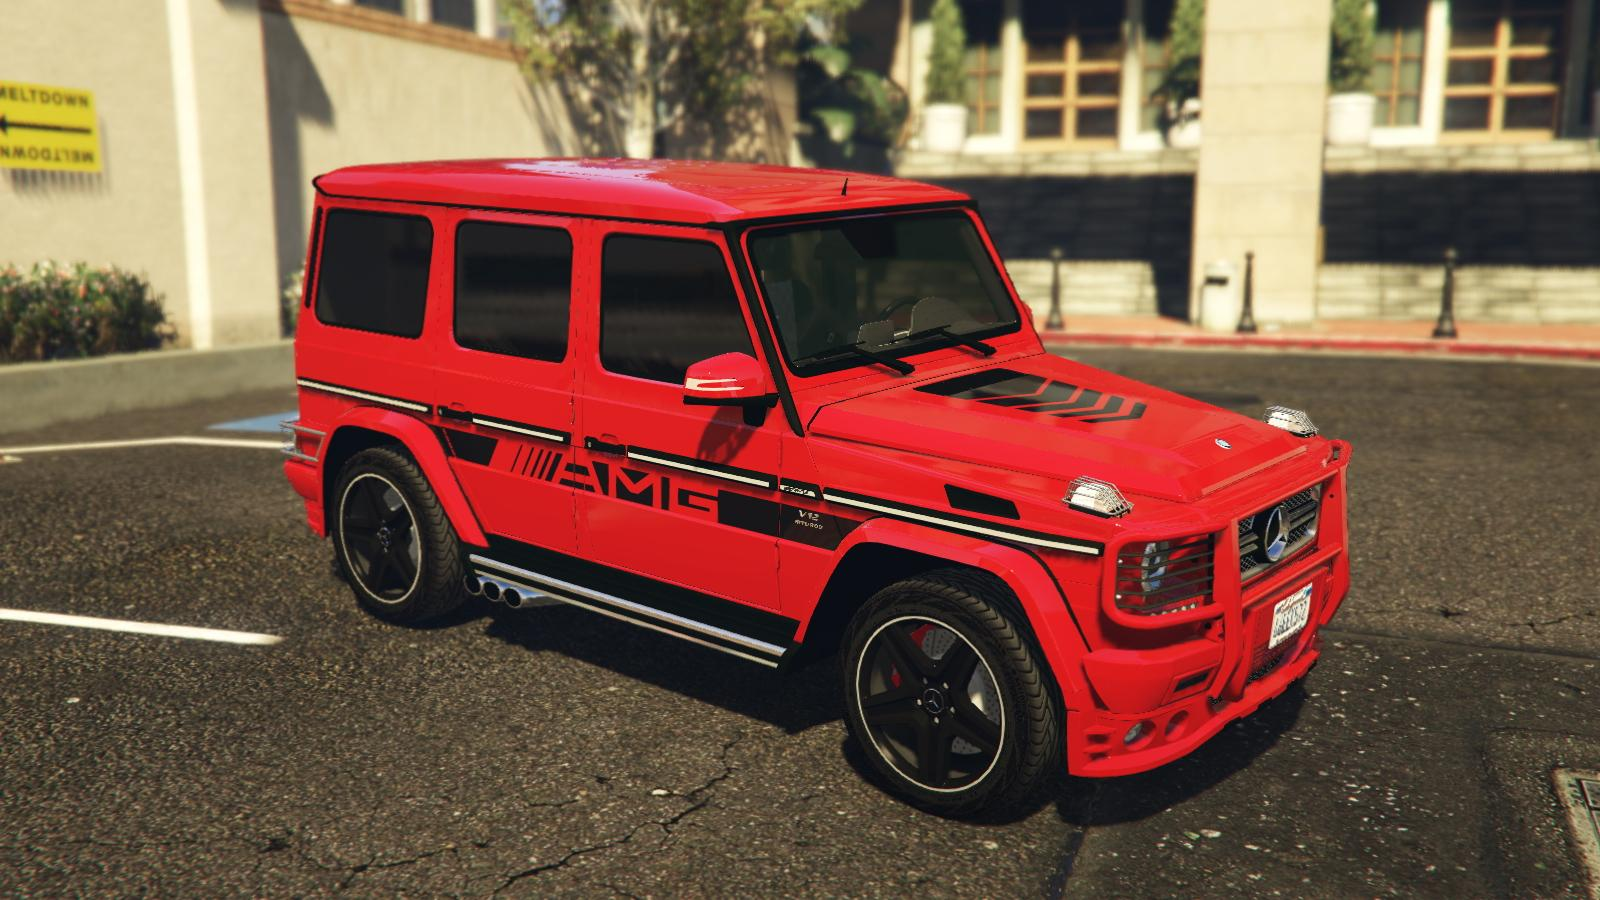 2013 mercedes benz g65 amg pack edition 463 live vip stripes paintjobs gta5. Black Bedroom Furniture Sets. Home Design Ideas